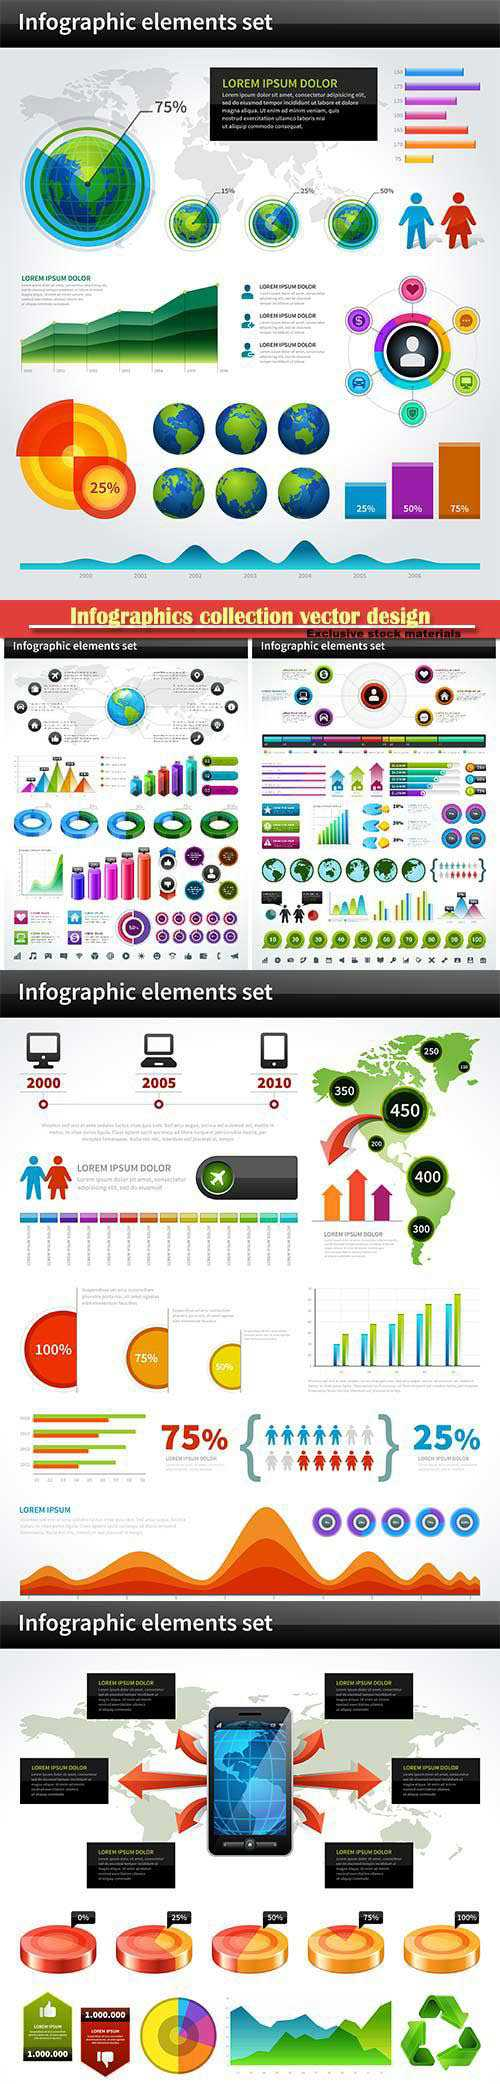 Infographics collection vector design elements, business presentation